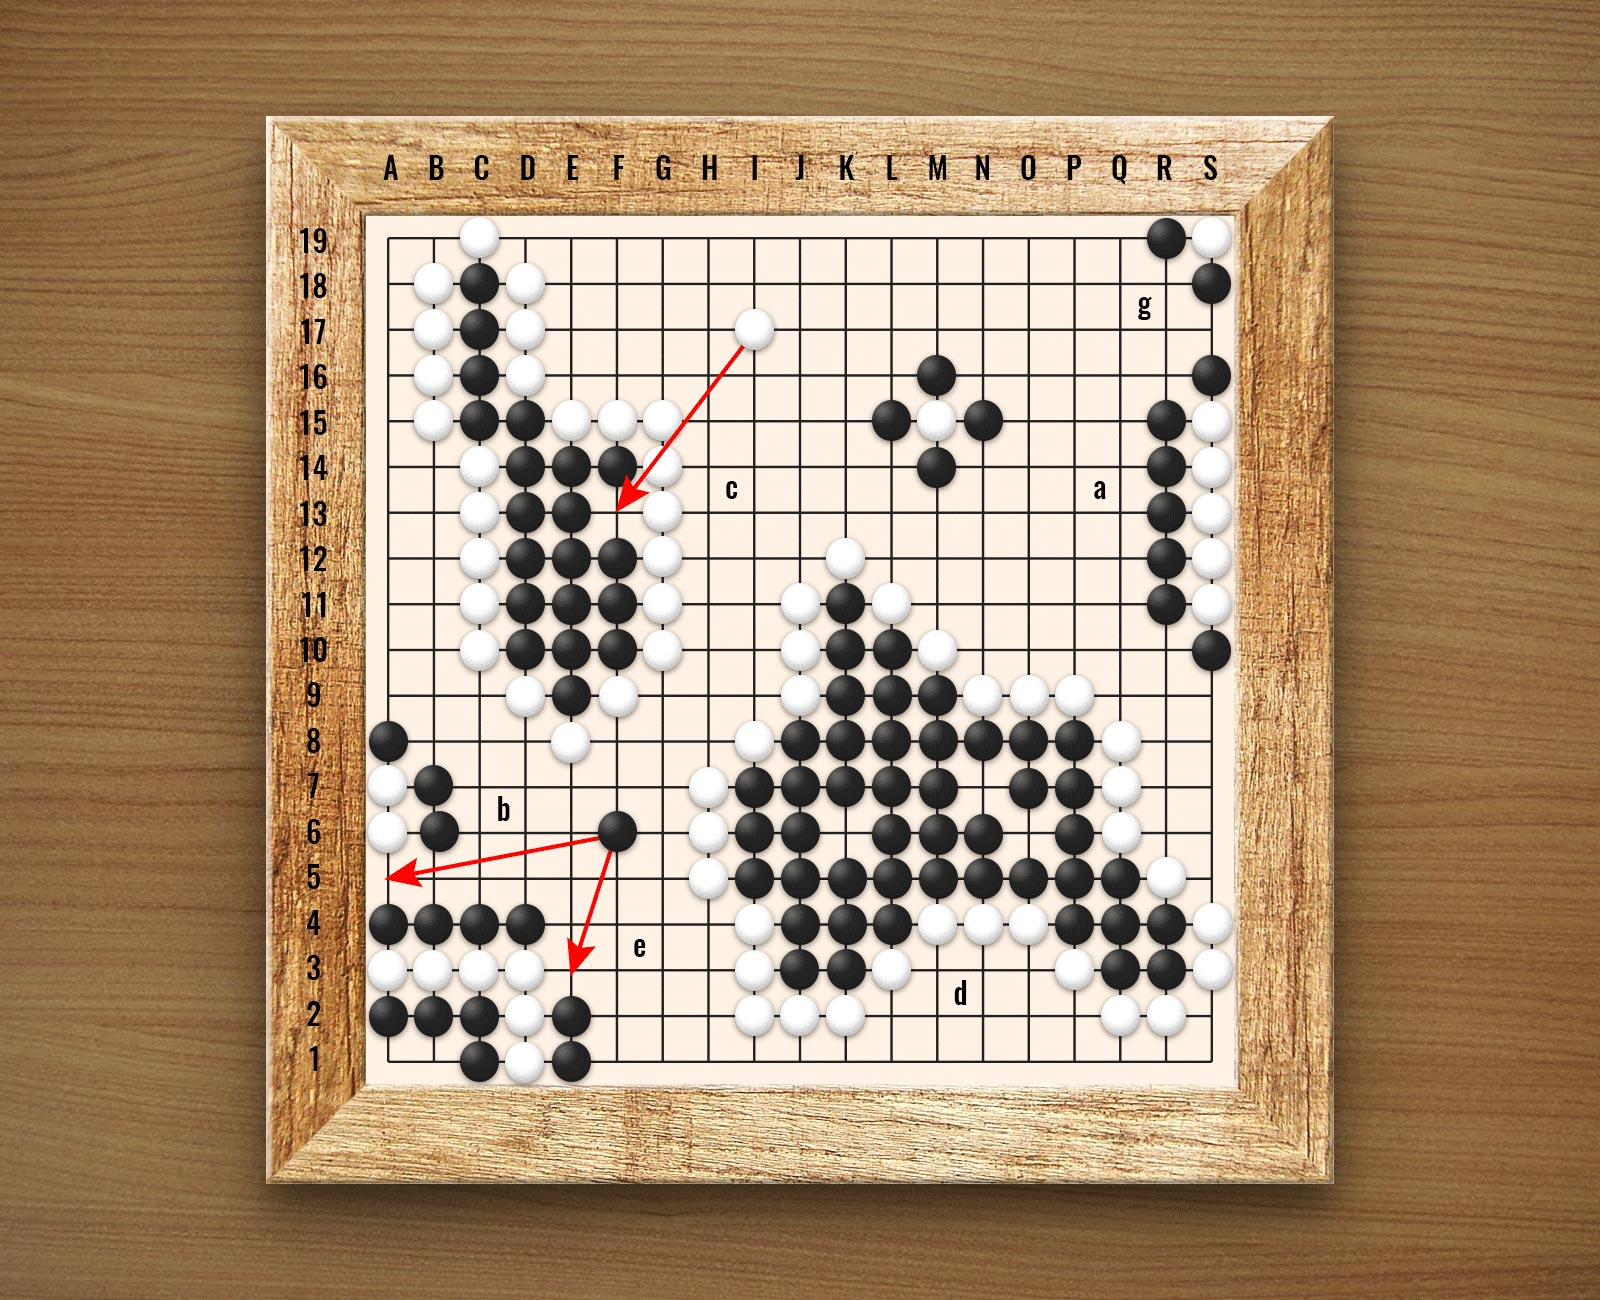 how to play go instructions